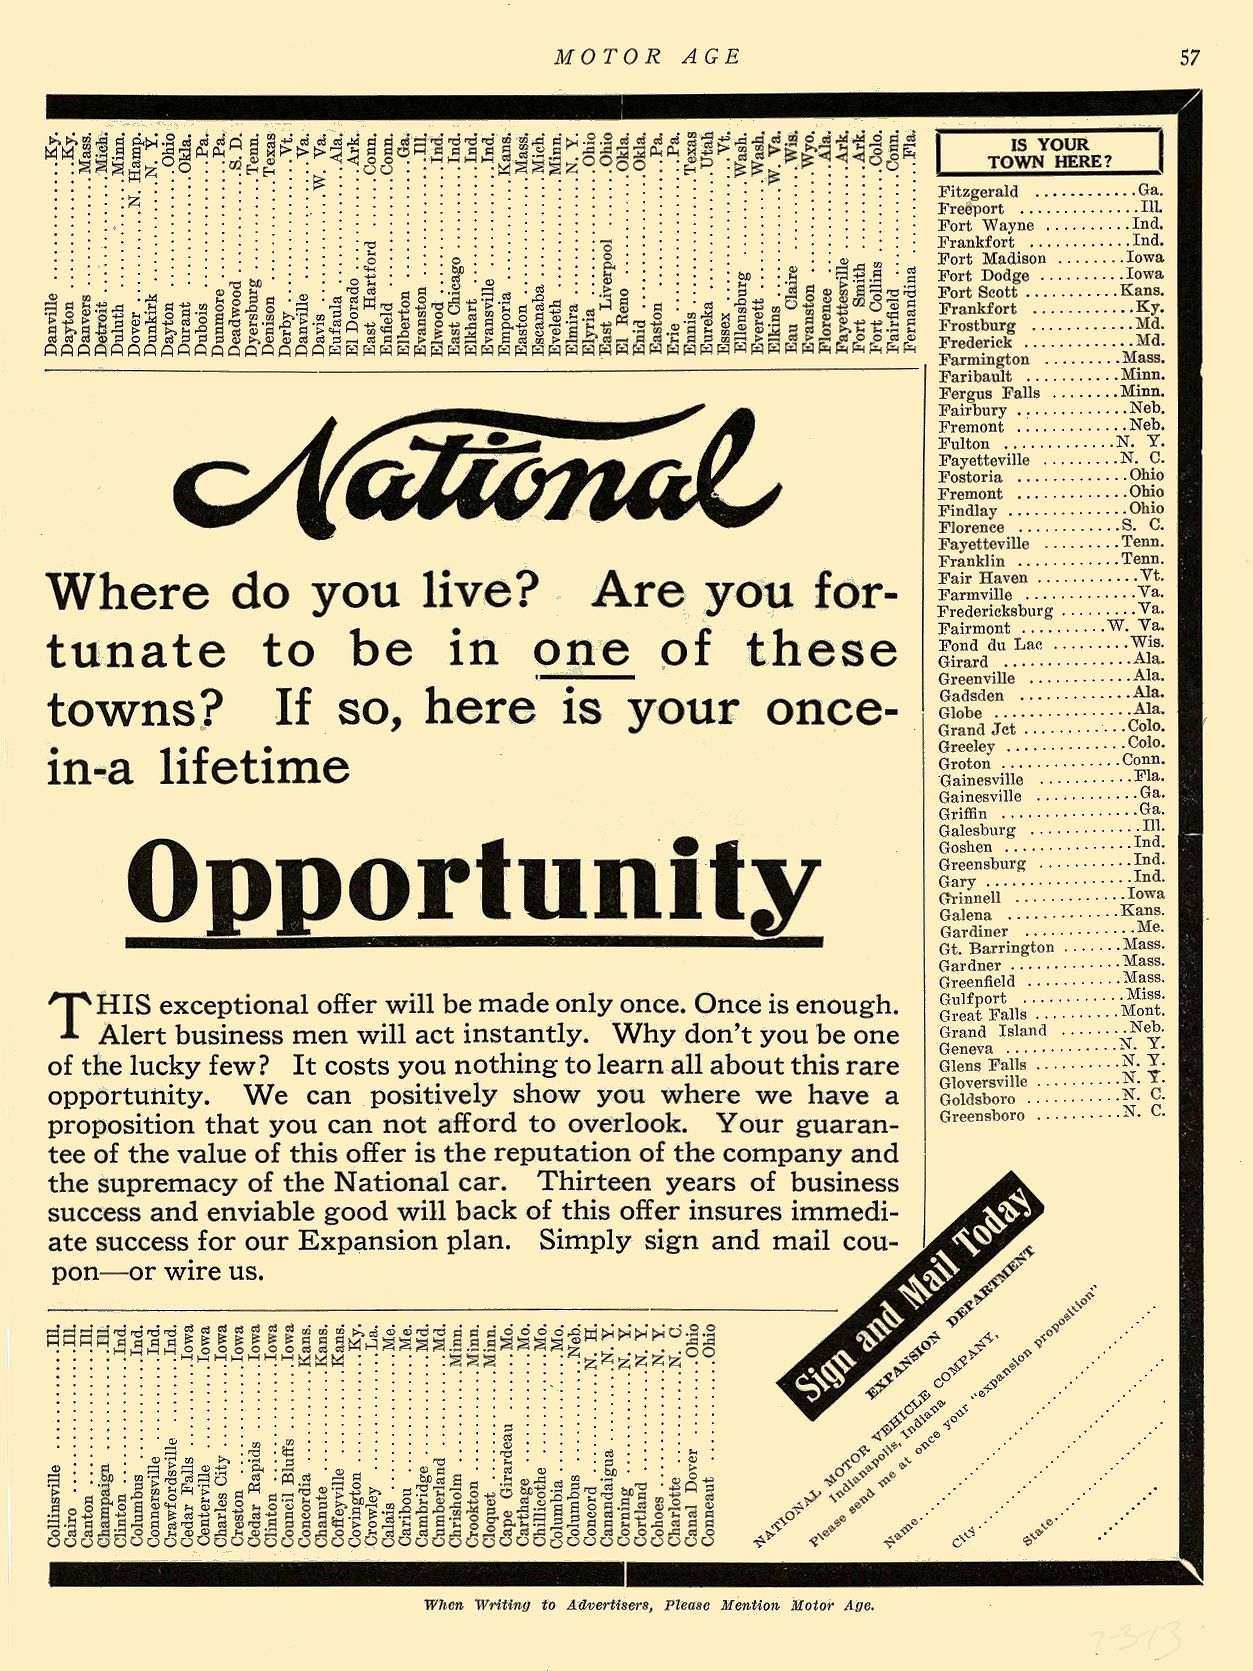 1913 7 3 NATIONAL National Save Money National Motor Vehicle Company Indianapolis, IND MOTOR AGE July 3, 1913 8.5″x12″ page 57